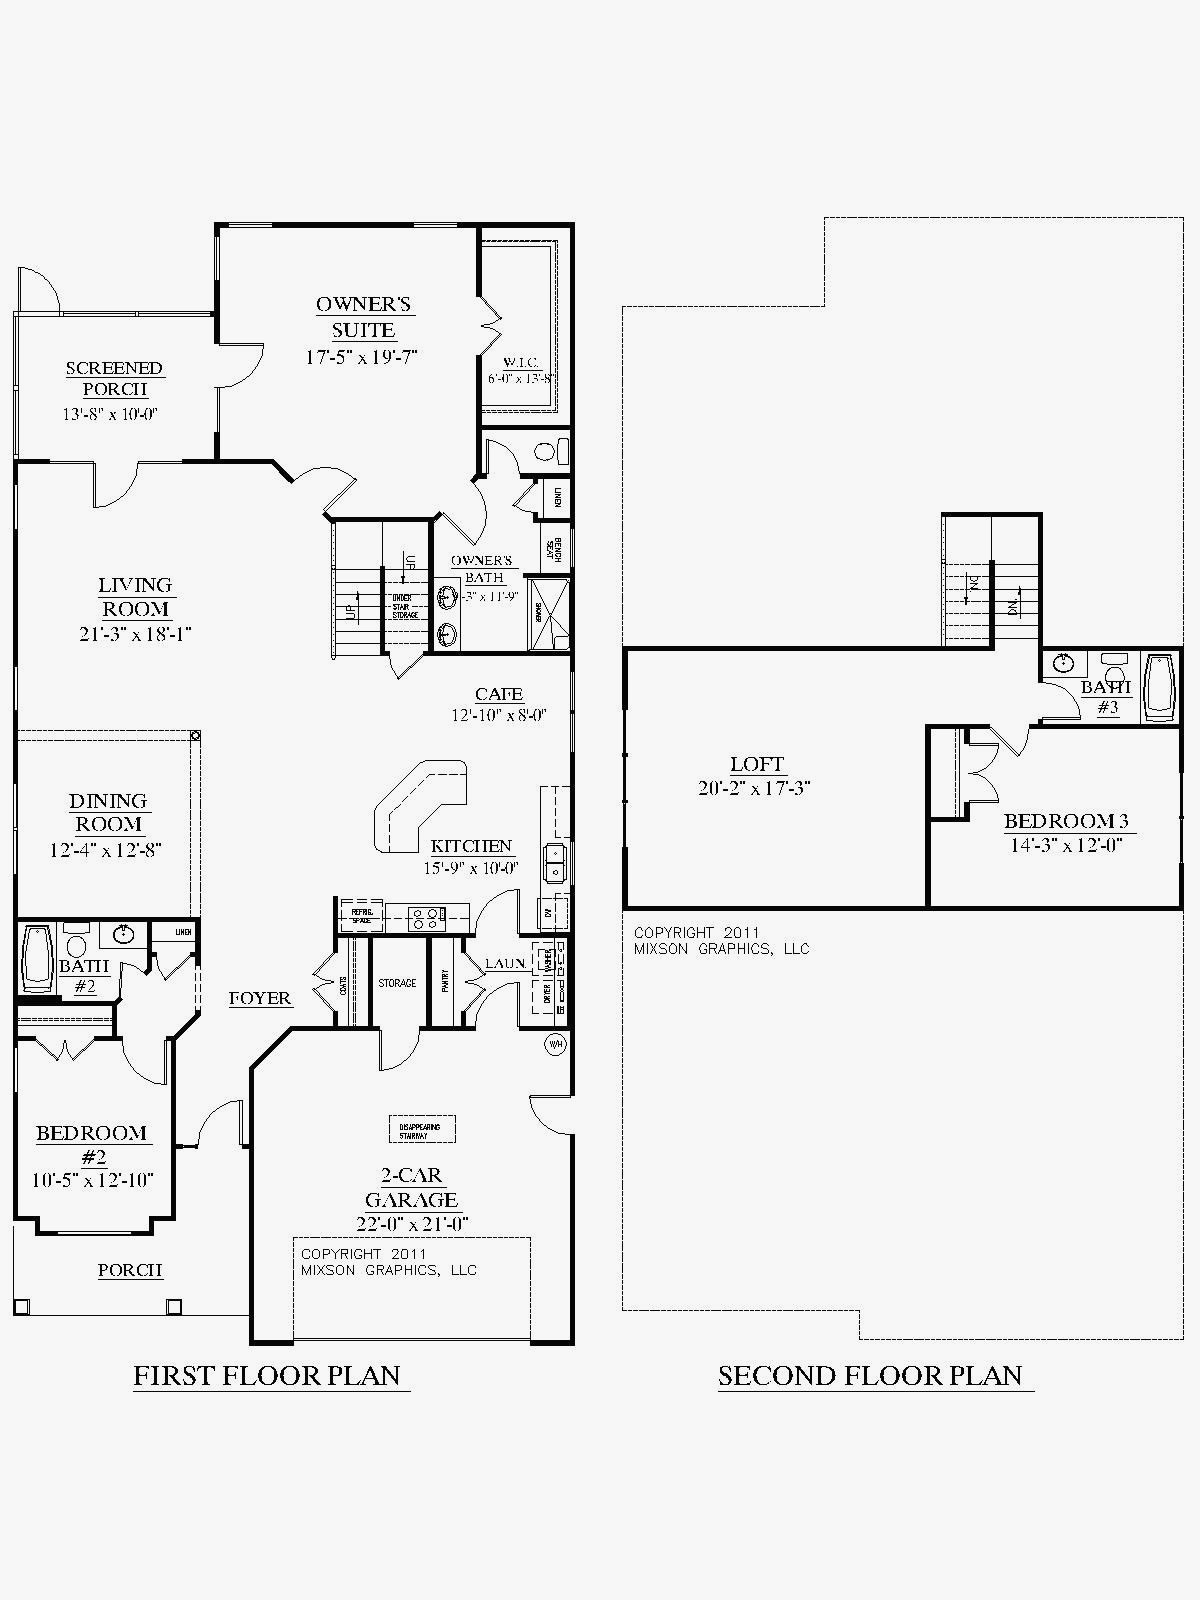 one story house plans with two master suites luxury 13 house plans 2 master suites single story ideas house